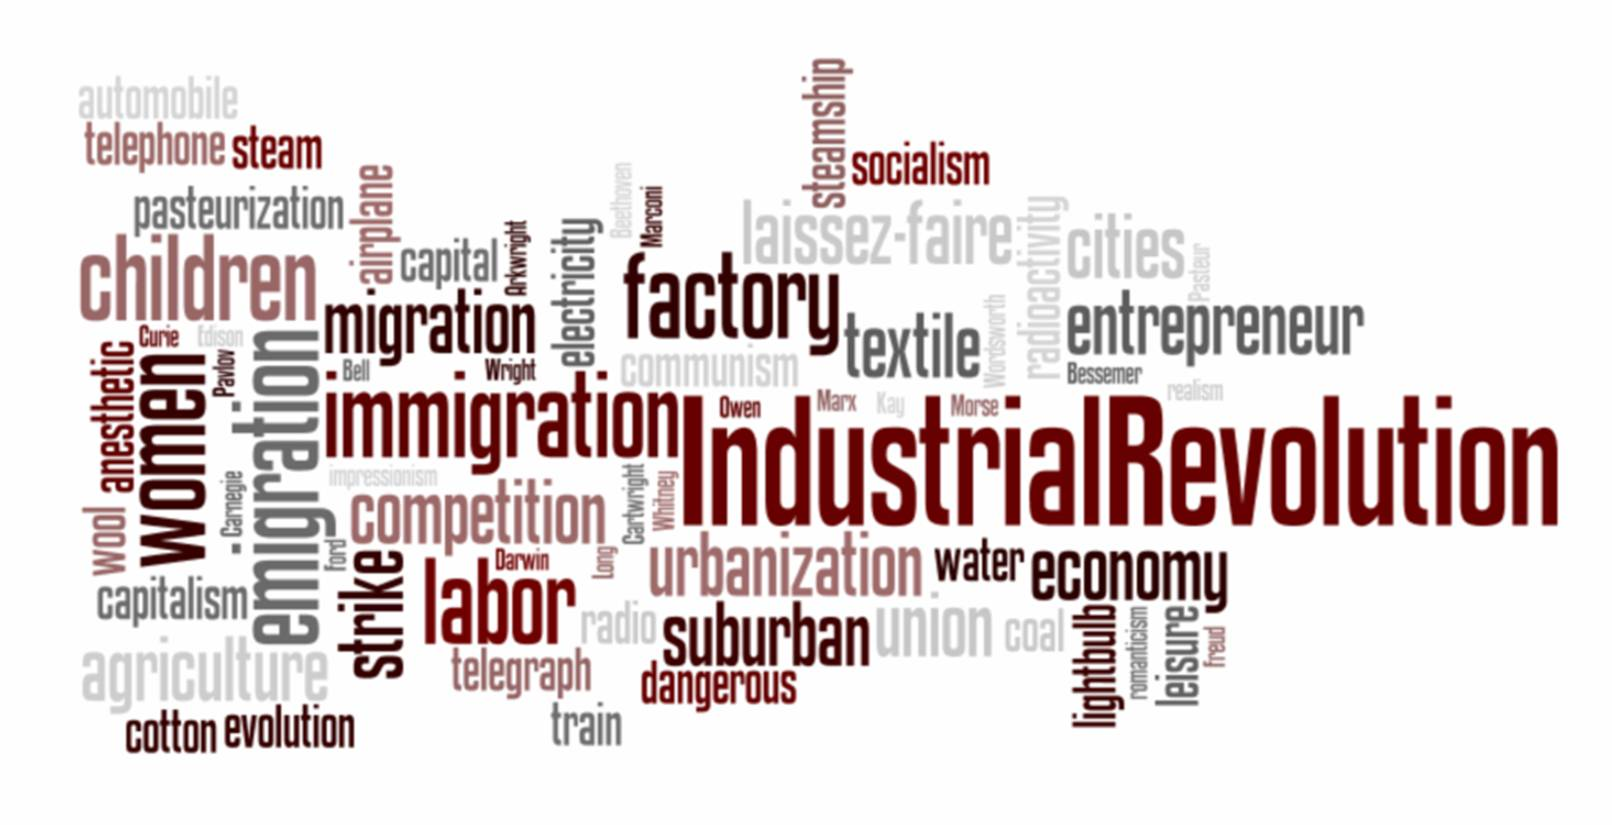 2.industrial_revolution